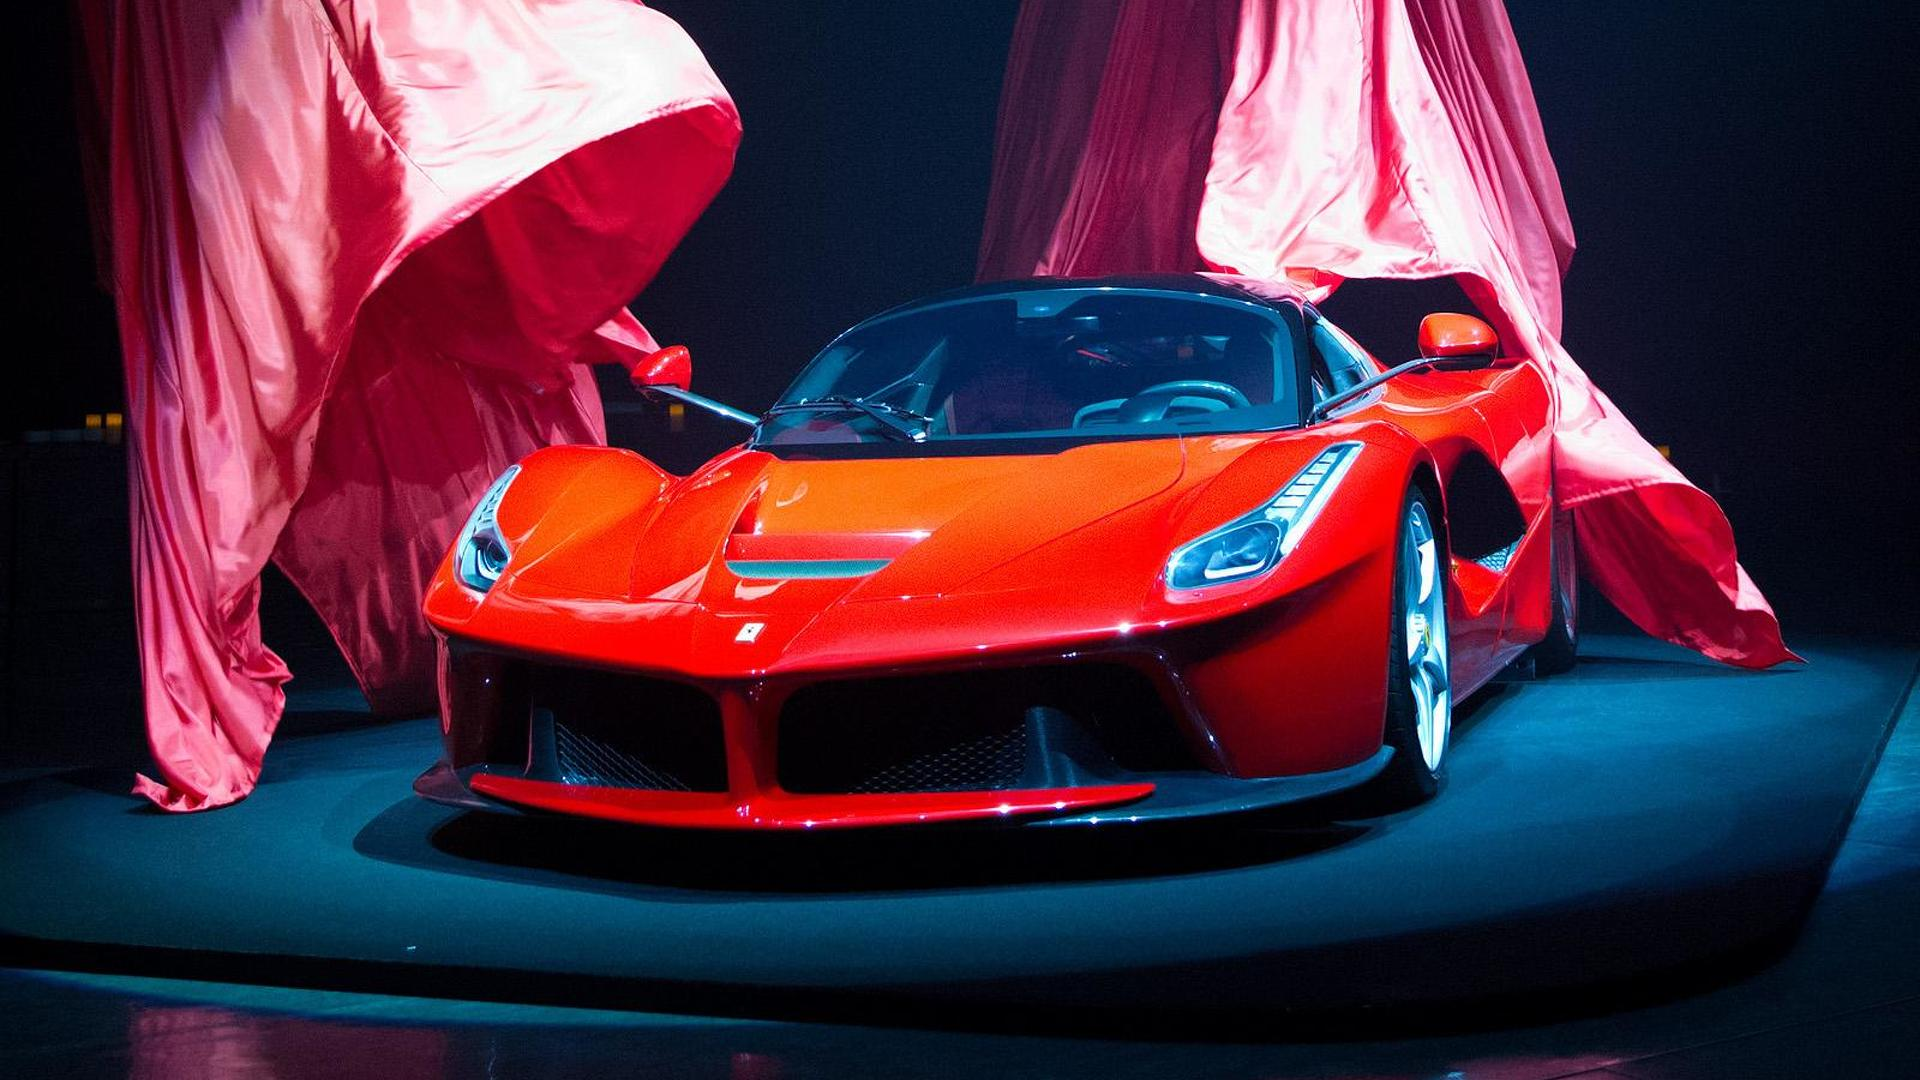 2013-413296-ferrari-laferrari-japanese-debut-31-05-20131